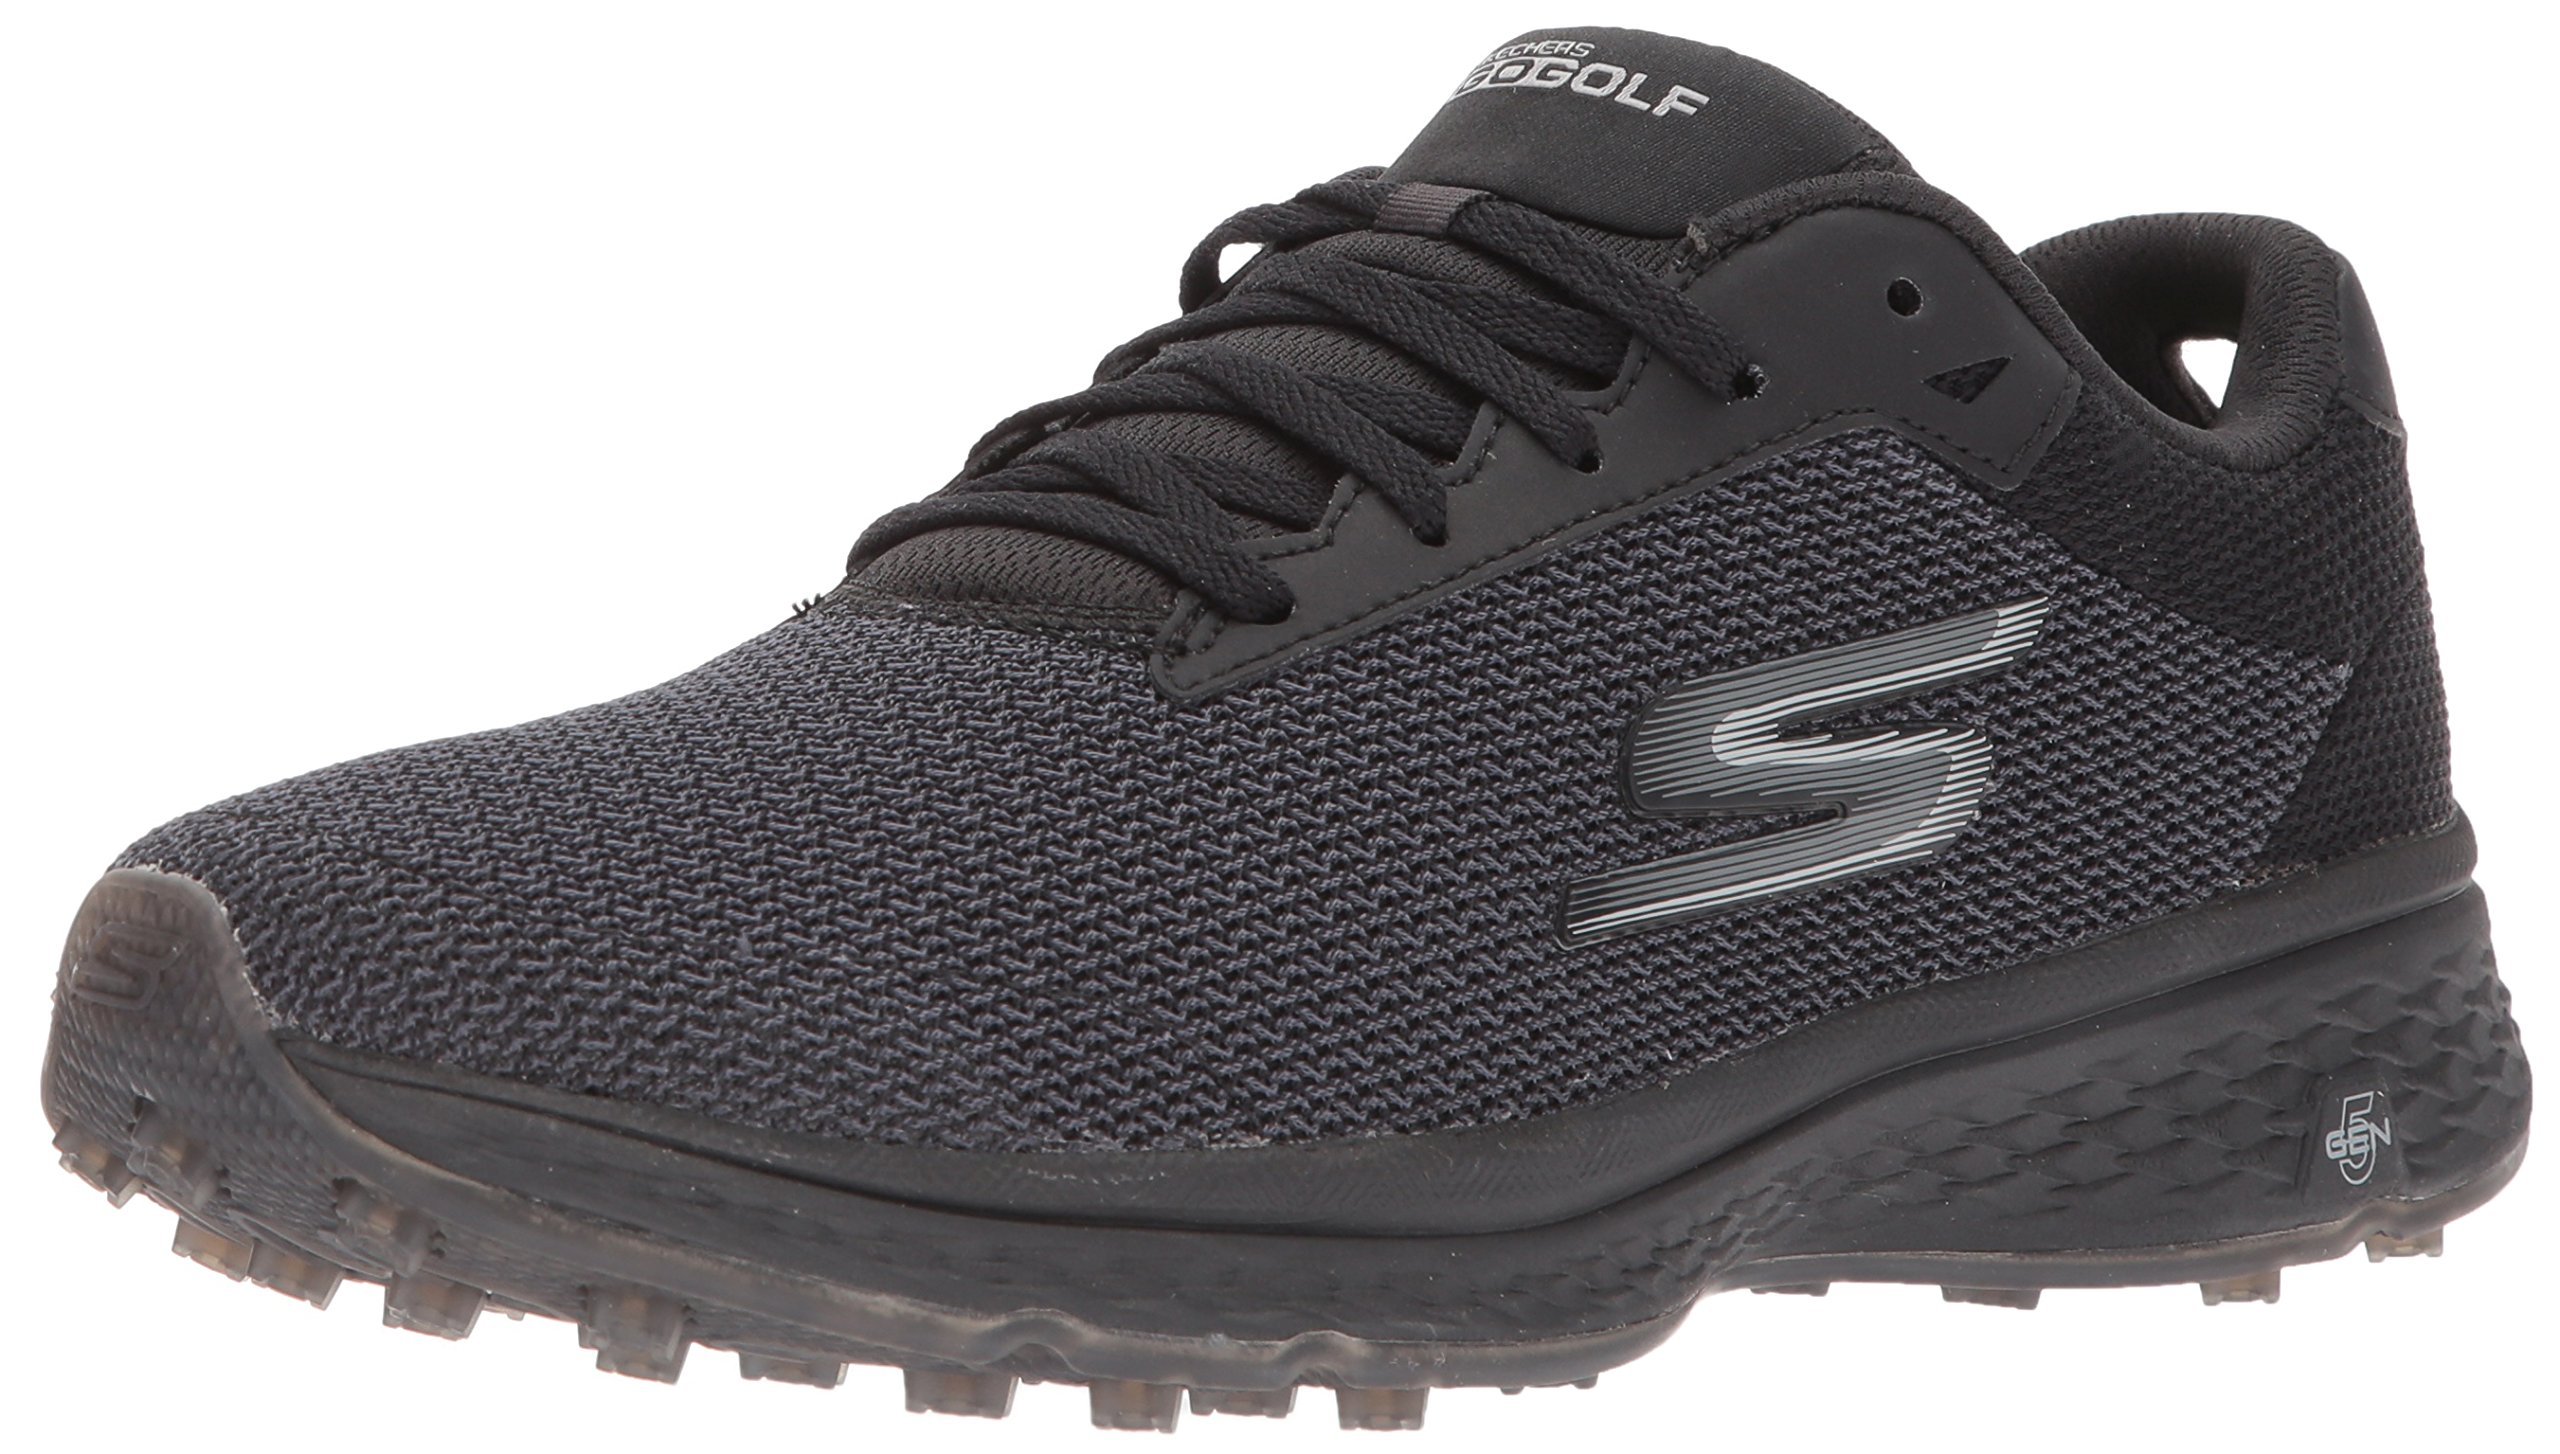 Skechers Golf Men's Go Golf Fairway Golf Shoe, Black Mesh, 12 M US by Skechers